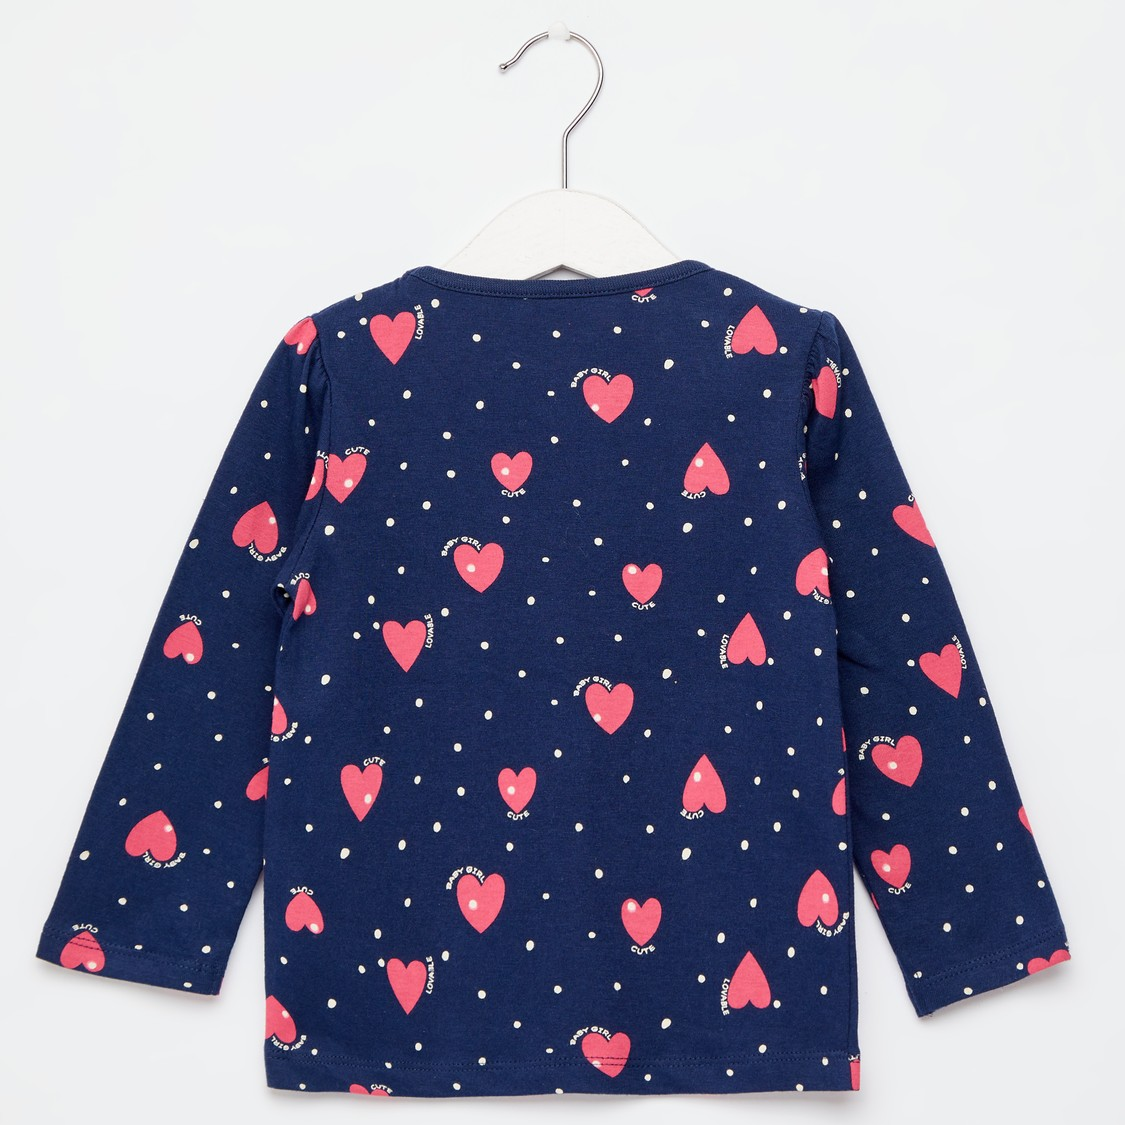 All-Over Hearts Print Top with Round Neck and Long Sleeves